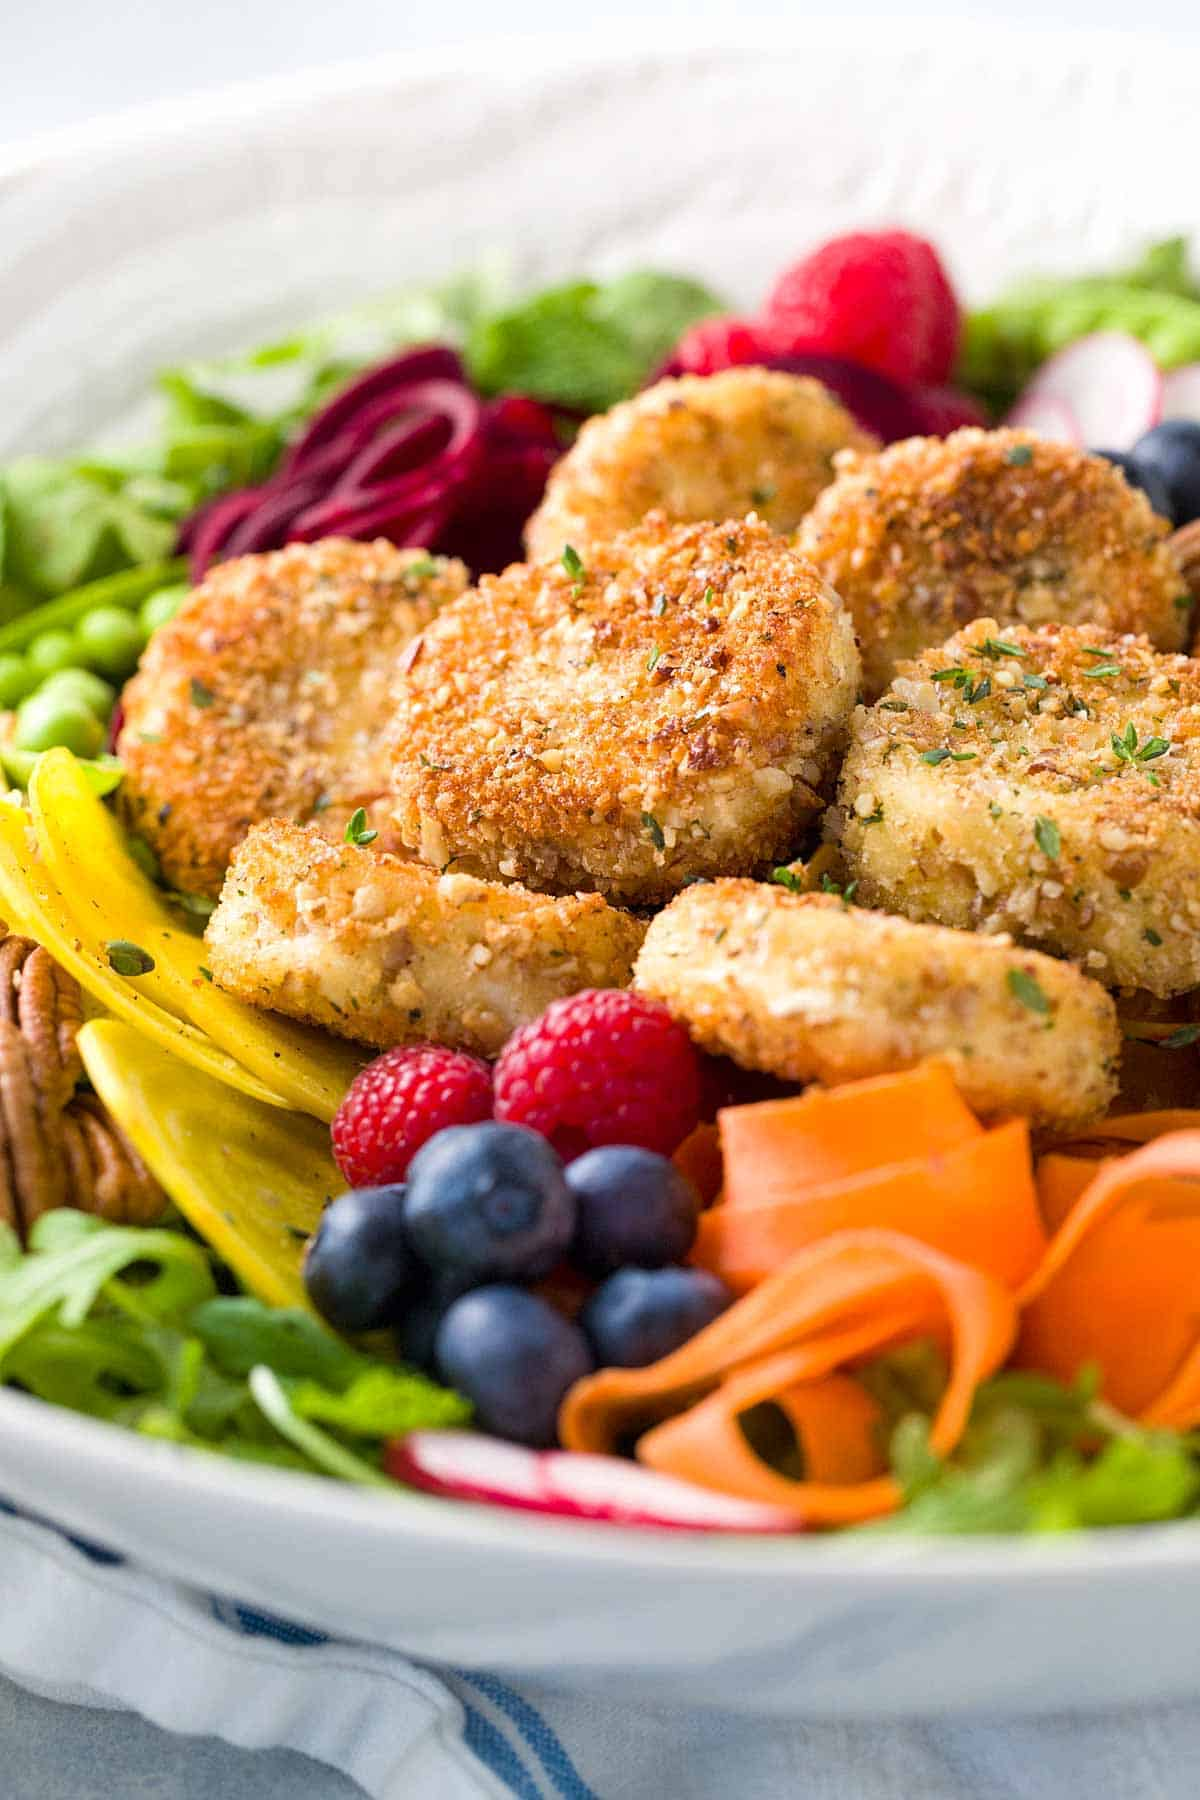 Fried Goat Cheese Salad with Raspberry Dressing | jessicagavin.com